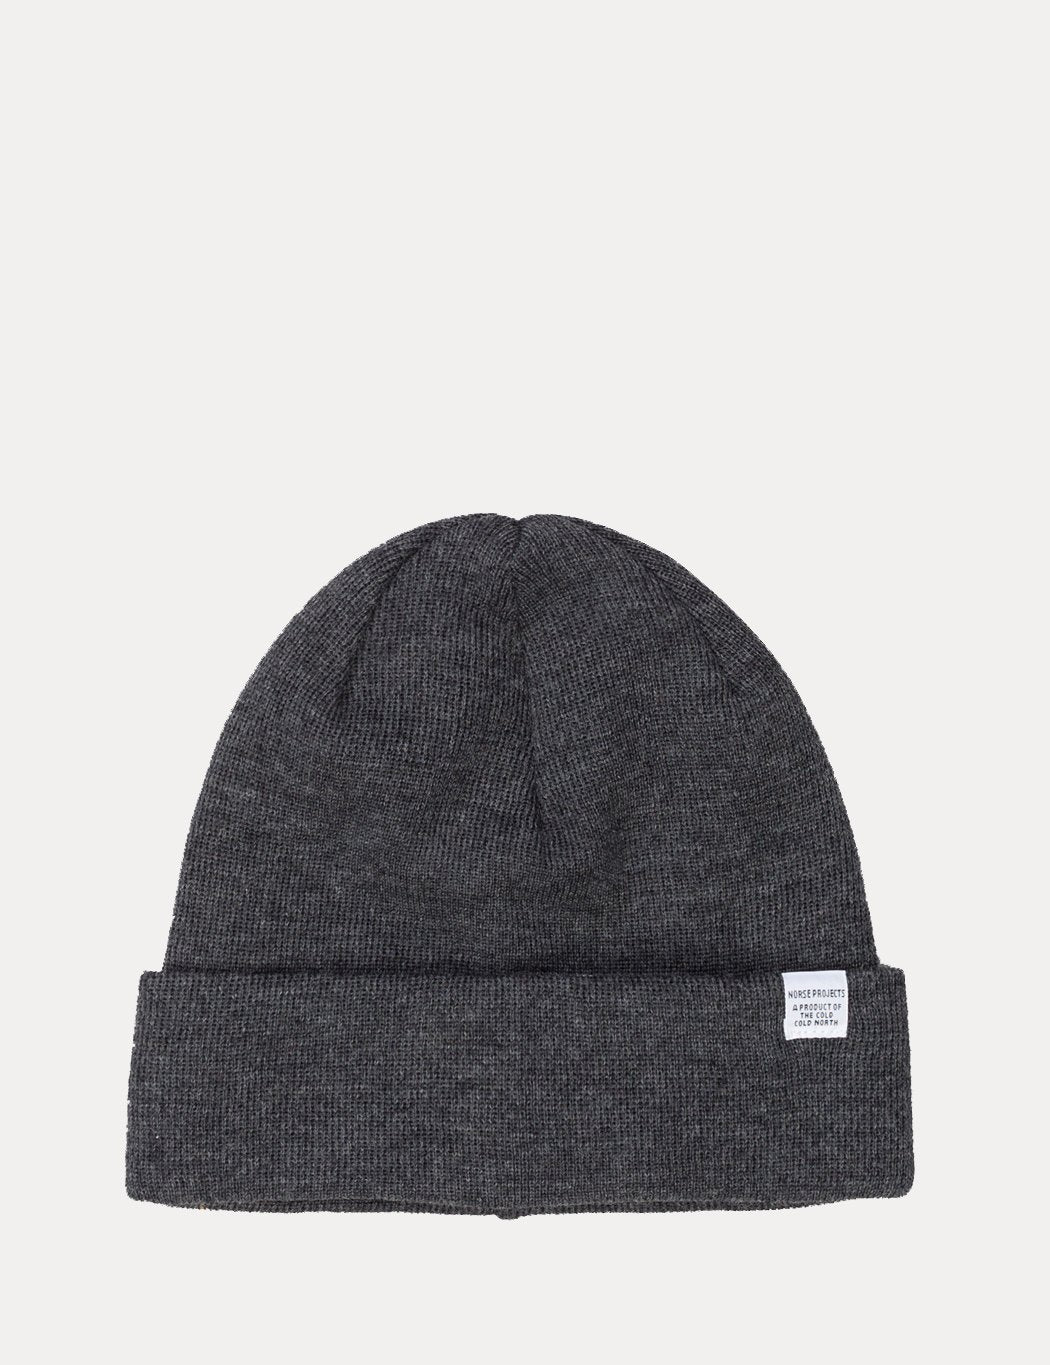 Norse Projects Top Strickmütze (Wolle) - Charcoal Grey Melange